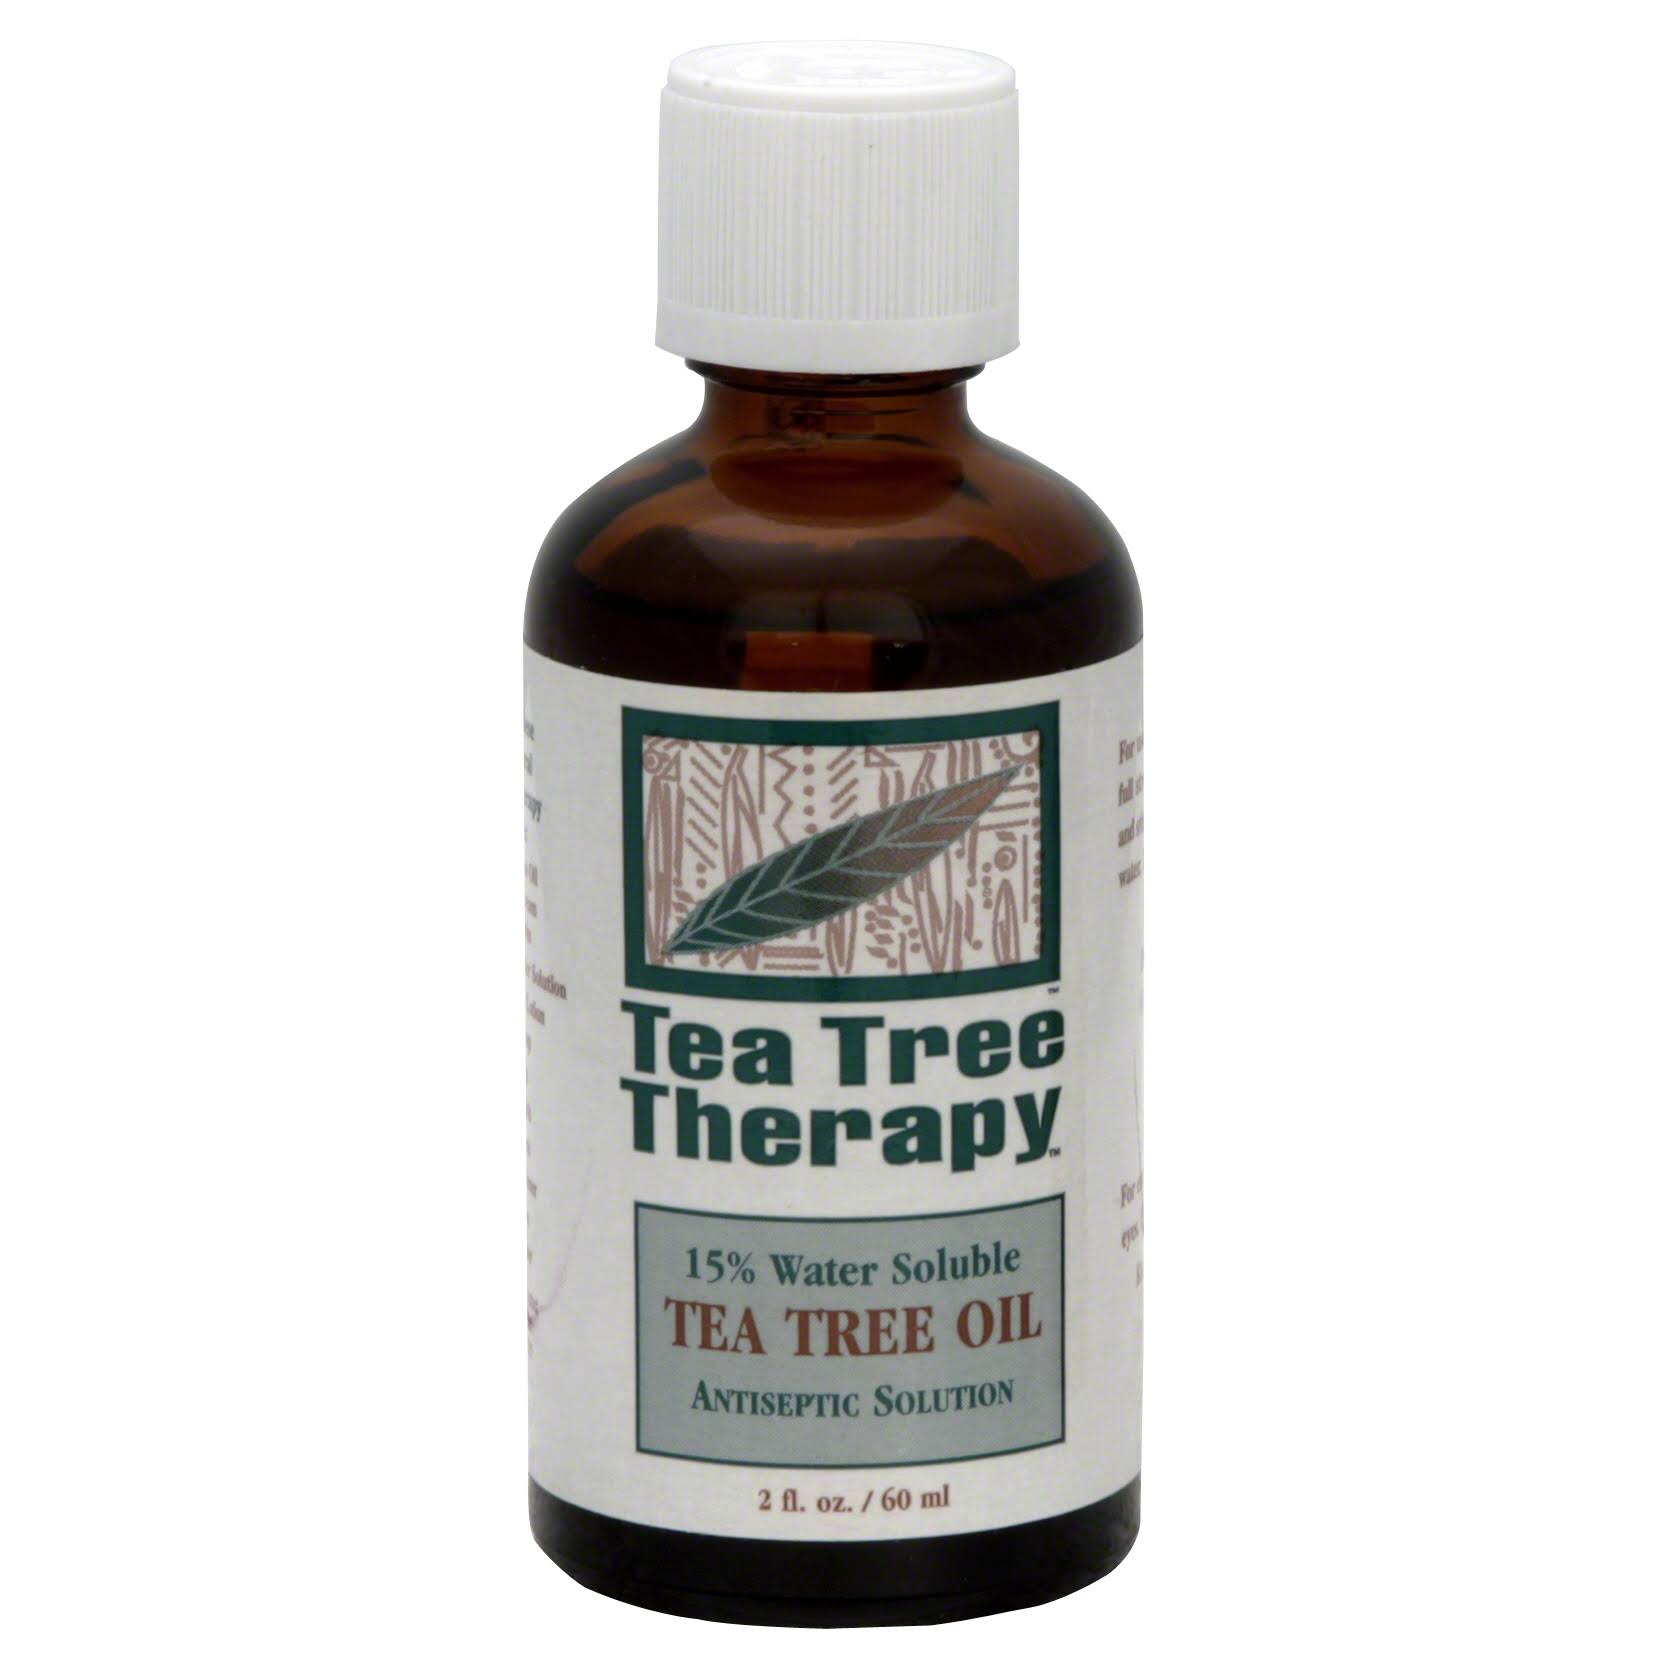 Tea Tree Therapy 0104372 Water Soluble Tea Tree Oil - 60ml